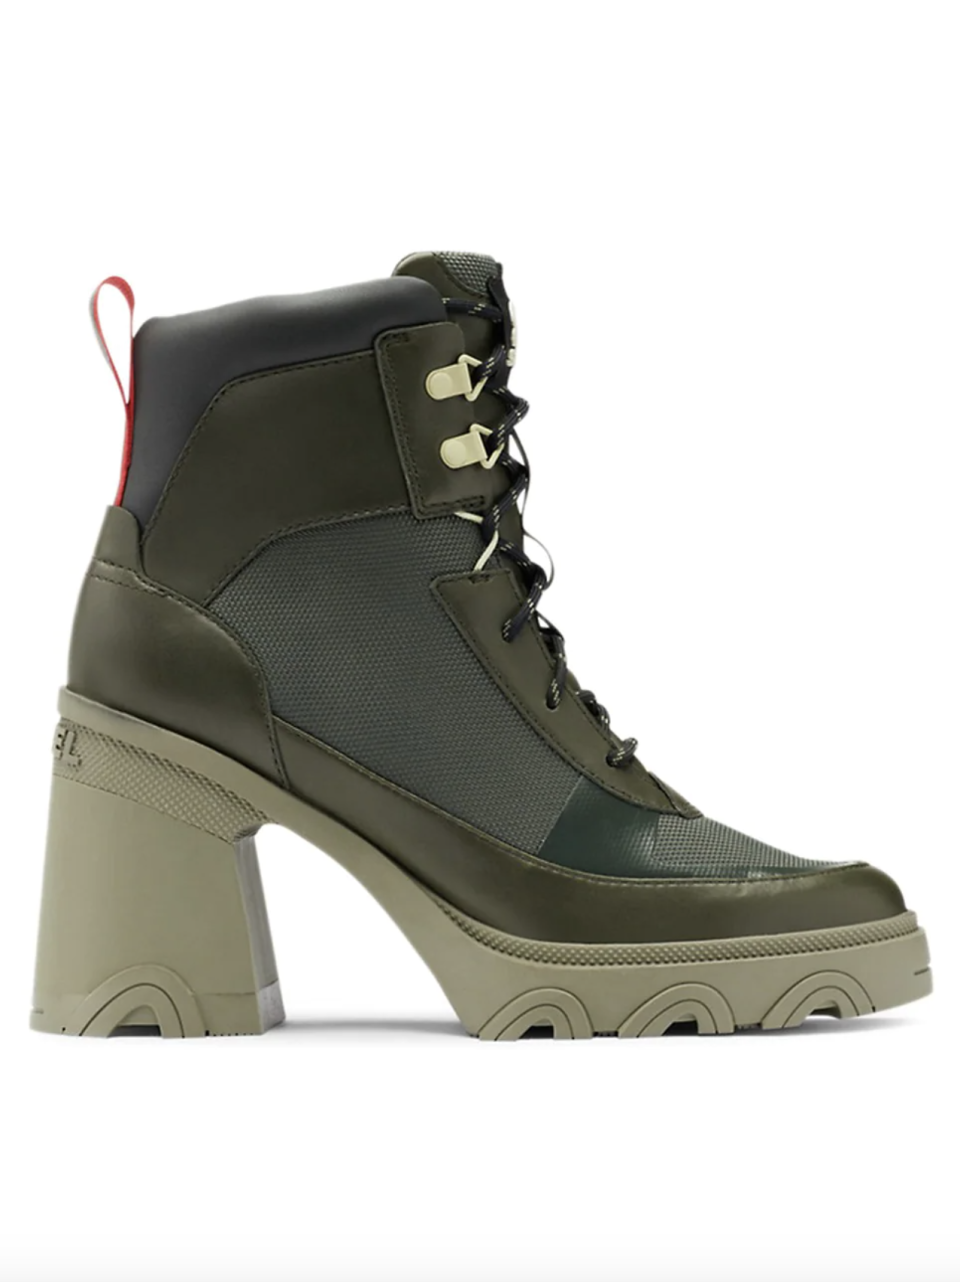 """<p><strong>Sorel</strong></p><p>saksfifthavenue.com</p><p><strong>$180.00</strong></p><p><a href=""""https://go.redirectingat.com?id=74968X1596630&url=https%3A%2F%2Fwww.saksfifthavenue.com%2Fproduct%2Fsorel-brex--8482--lace-up-boots-0400014652064.html&sref=https%3A%2F%2Fwww.harpersbazaar.com%2Ffashion%2Ftrends%2Fg37157481%2Fbest-cheap-boots%2F"""" rel=""""nofollow noopener"""" target=""""_blank"""" data-ylk=""""slk:Shop Now"""" class=""""link rapid-noclick-resp"""">Shop Now</a></p><p>Stomp into colder weather with this elevated take on the hiking boot.</p>"""